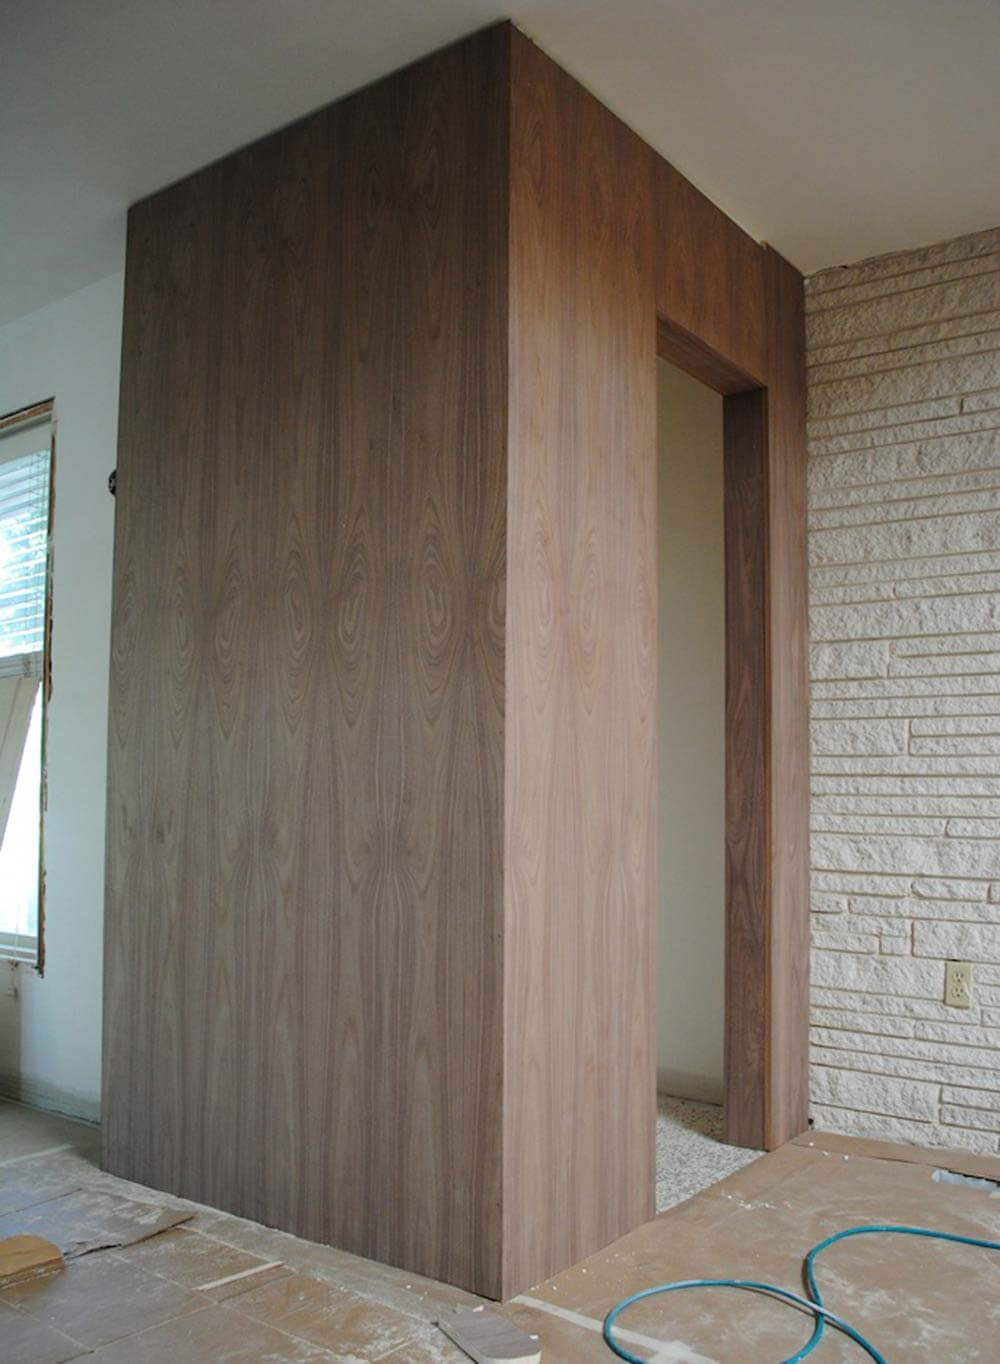 Midcentury modern doors galore inside mike and lindsey 39 s - Mid century modern doors ...